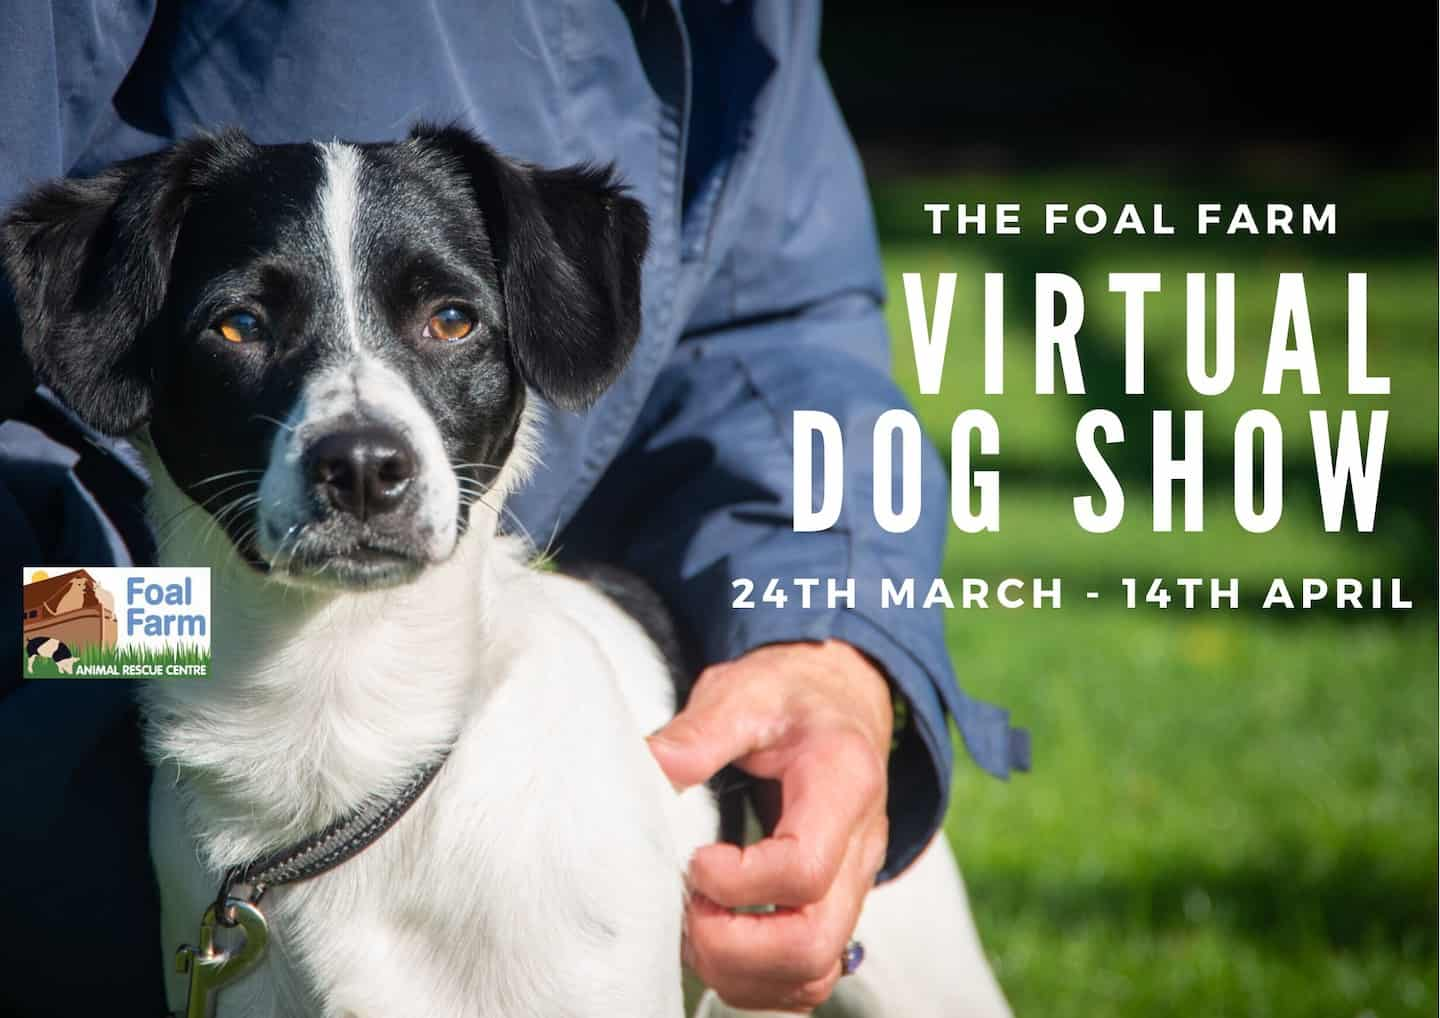 Foal Farm Virtual Dog Show